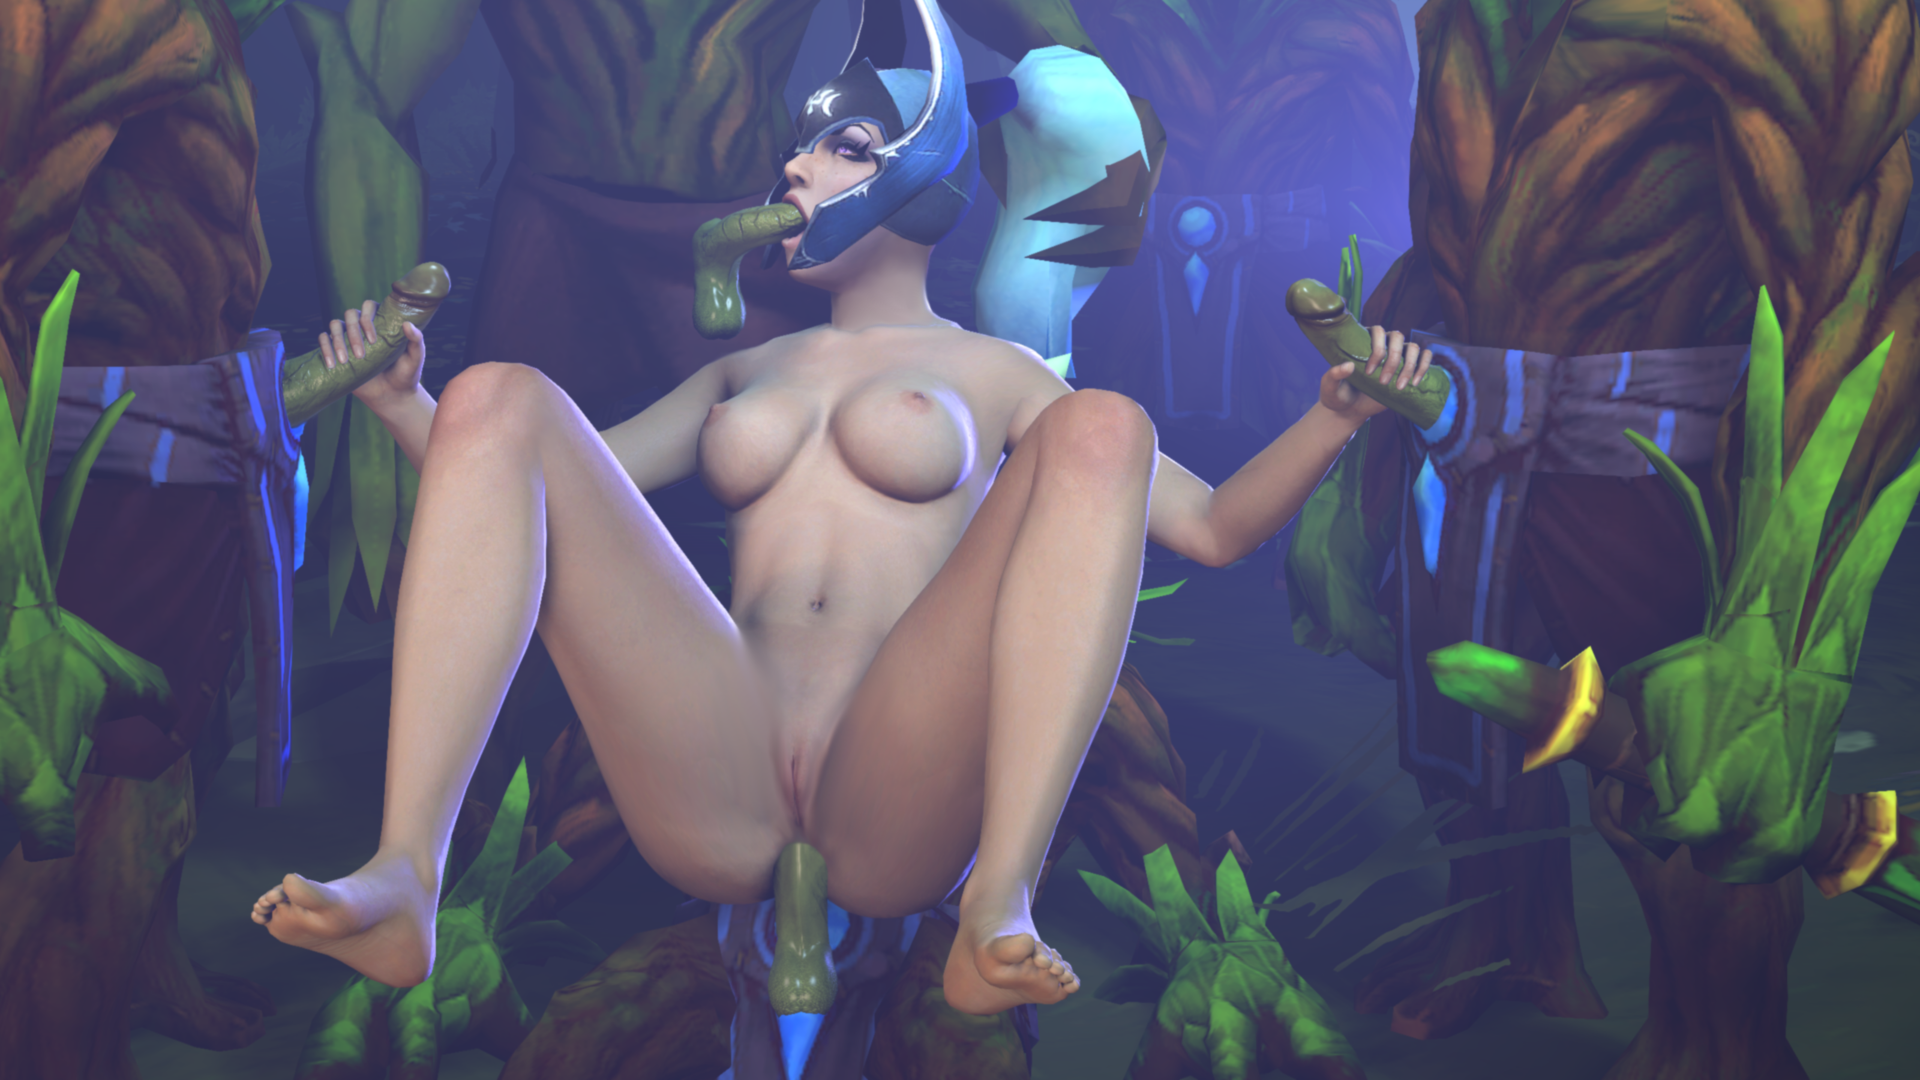 Dota 2 art nude erotic pictures erotic photos